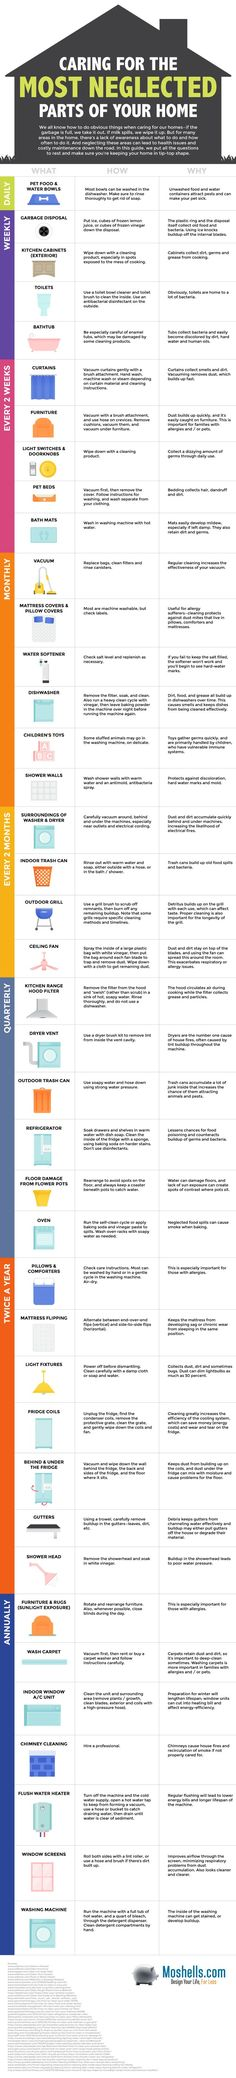 You probably do the basic stuff when you clean your home, like wiping down counters and washing sheets, but some things undoubtedly get forgotten. This visual guide can help you establish a regular cleaning schedule for the stuff that tends to fall by the House Cleaning Tips, Cleaning Hacks, Cleaning Lists, Cleaning Recipes, Apartment Cleaning, Fridge Cleaning, Spring Cleaning Schedules, Clean Apartment, Household Cleaning Schedule